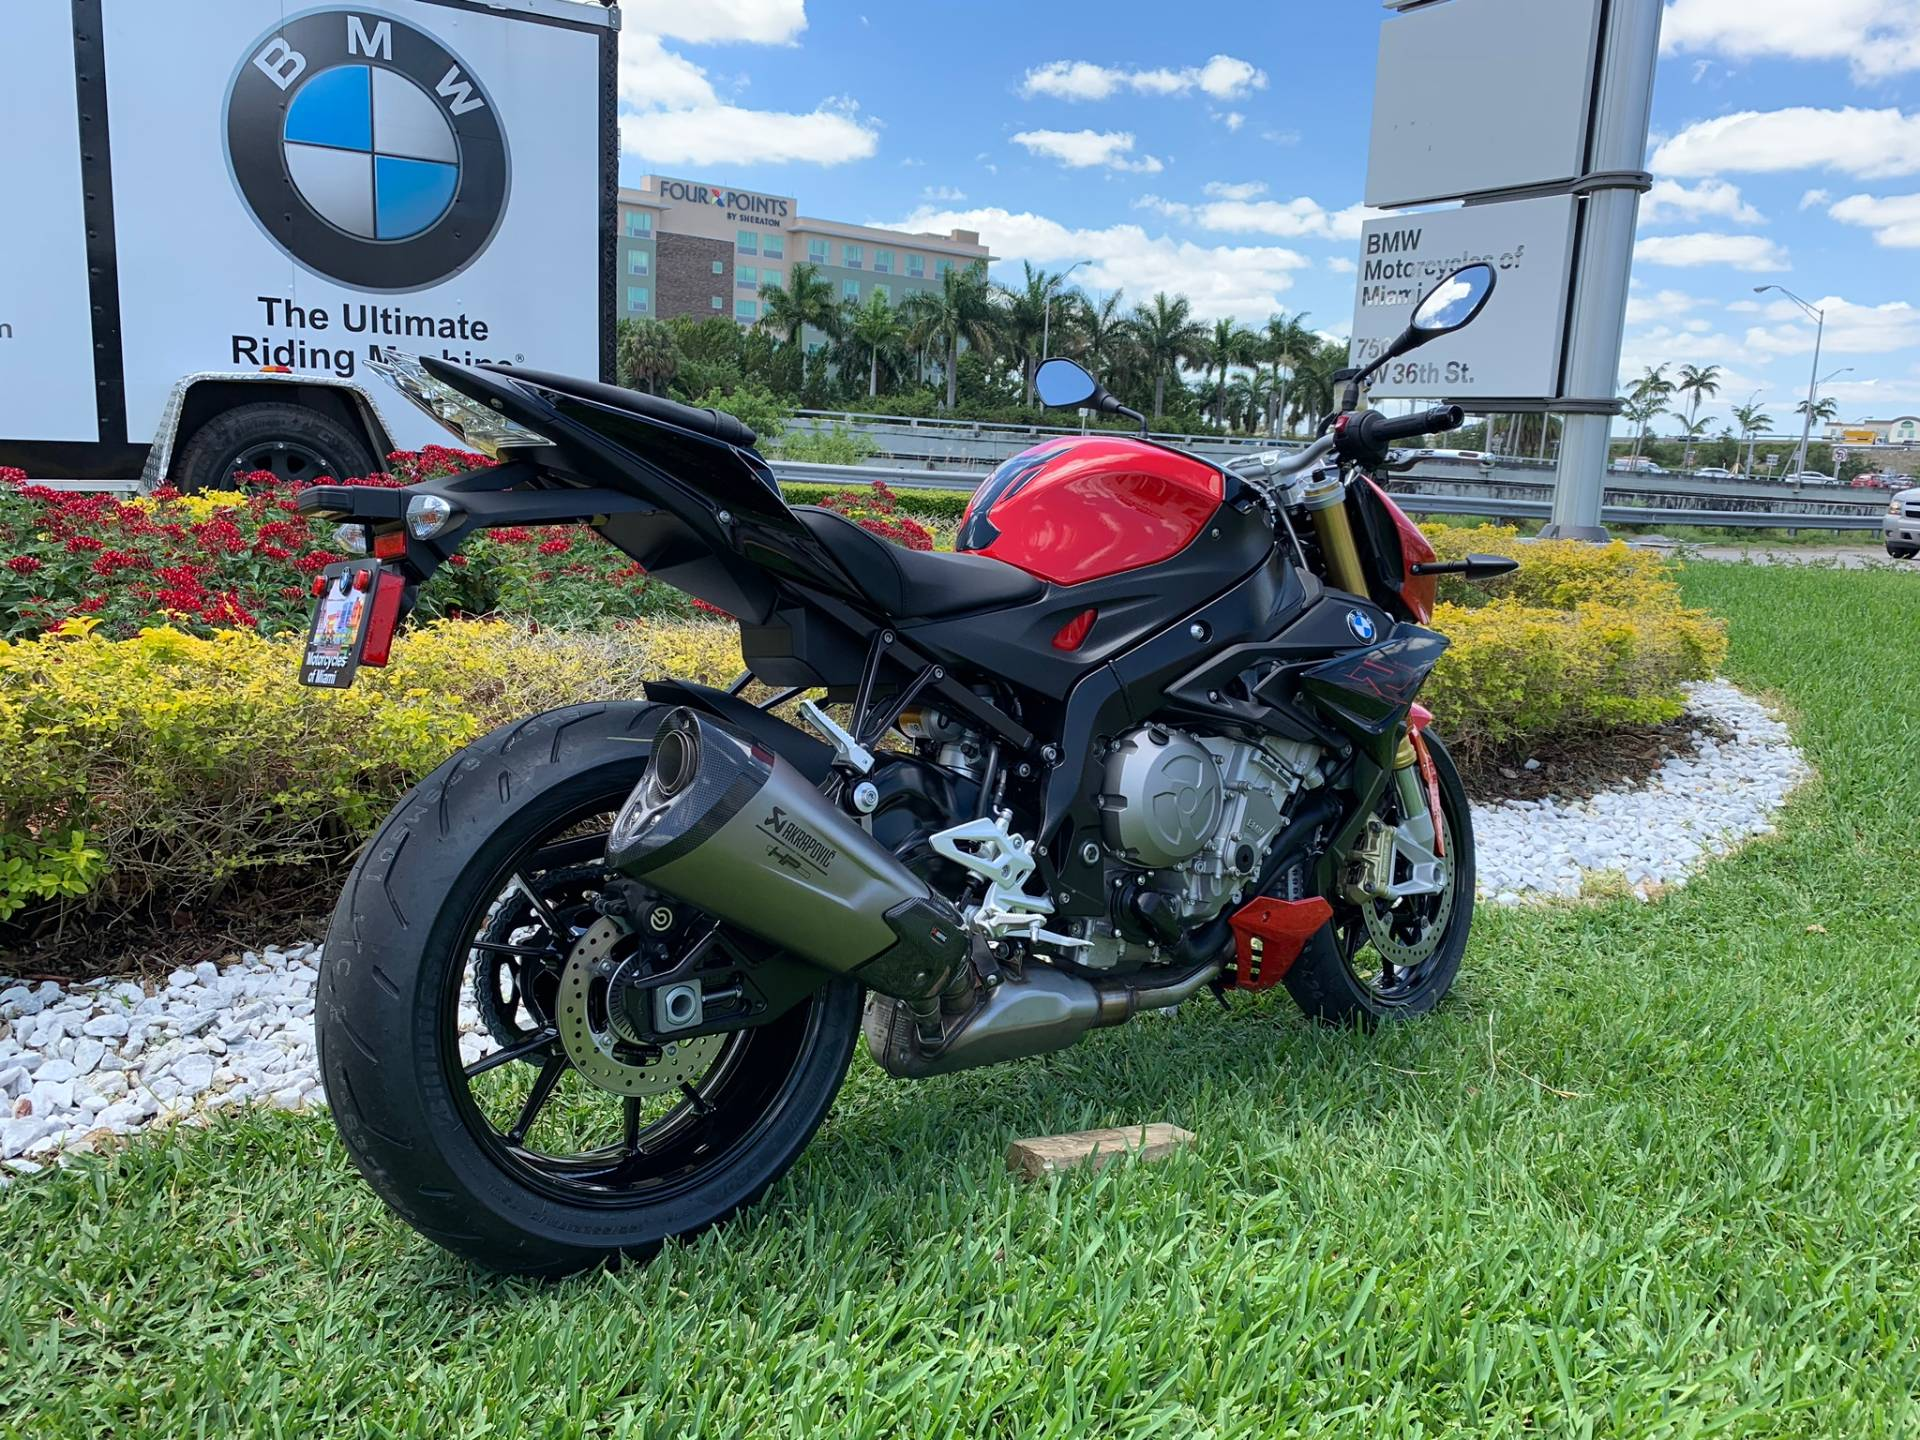 New 2019 BMW S 1000 R for sale, BMW S 1000R for sale, BMW Motorcycle S1000R, new BMW R, Sport, roadster, naked. BMW Motorcycles of Miami, Motorcycles of Miami, Motorcycles Miami, New Motorcycles, Used Motorcycles, pre-owned. #BMWMotorcyclesOfMiami #MotorcyclesOfMiami #MotorcyclesMiami - Photo 22